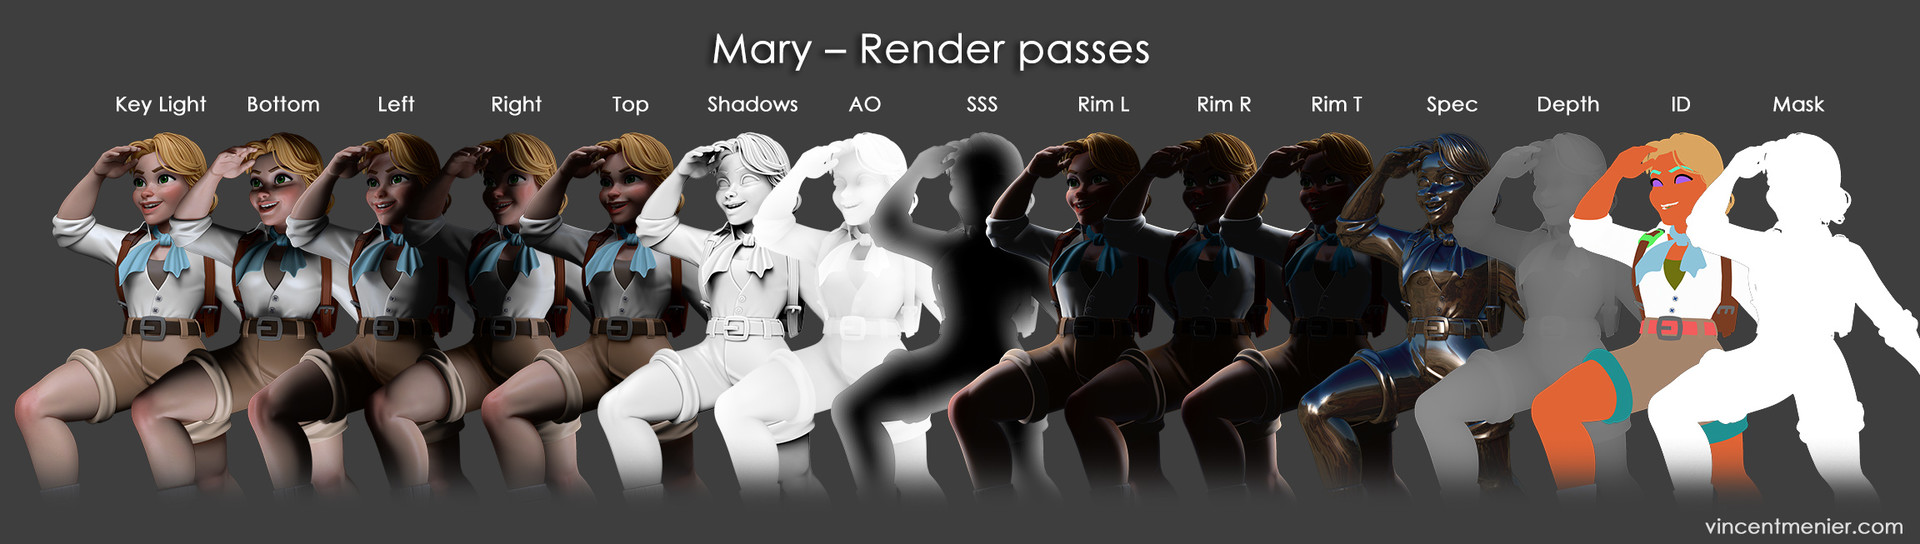 Vincent menier mary breakdown 05 render s